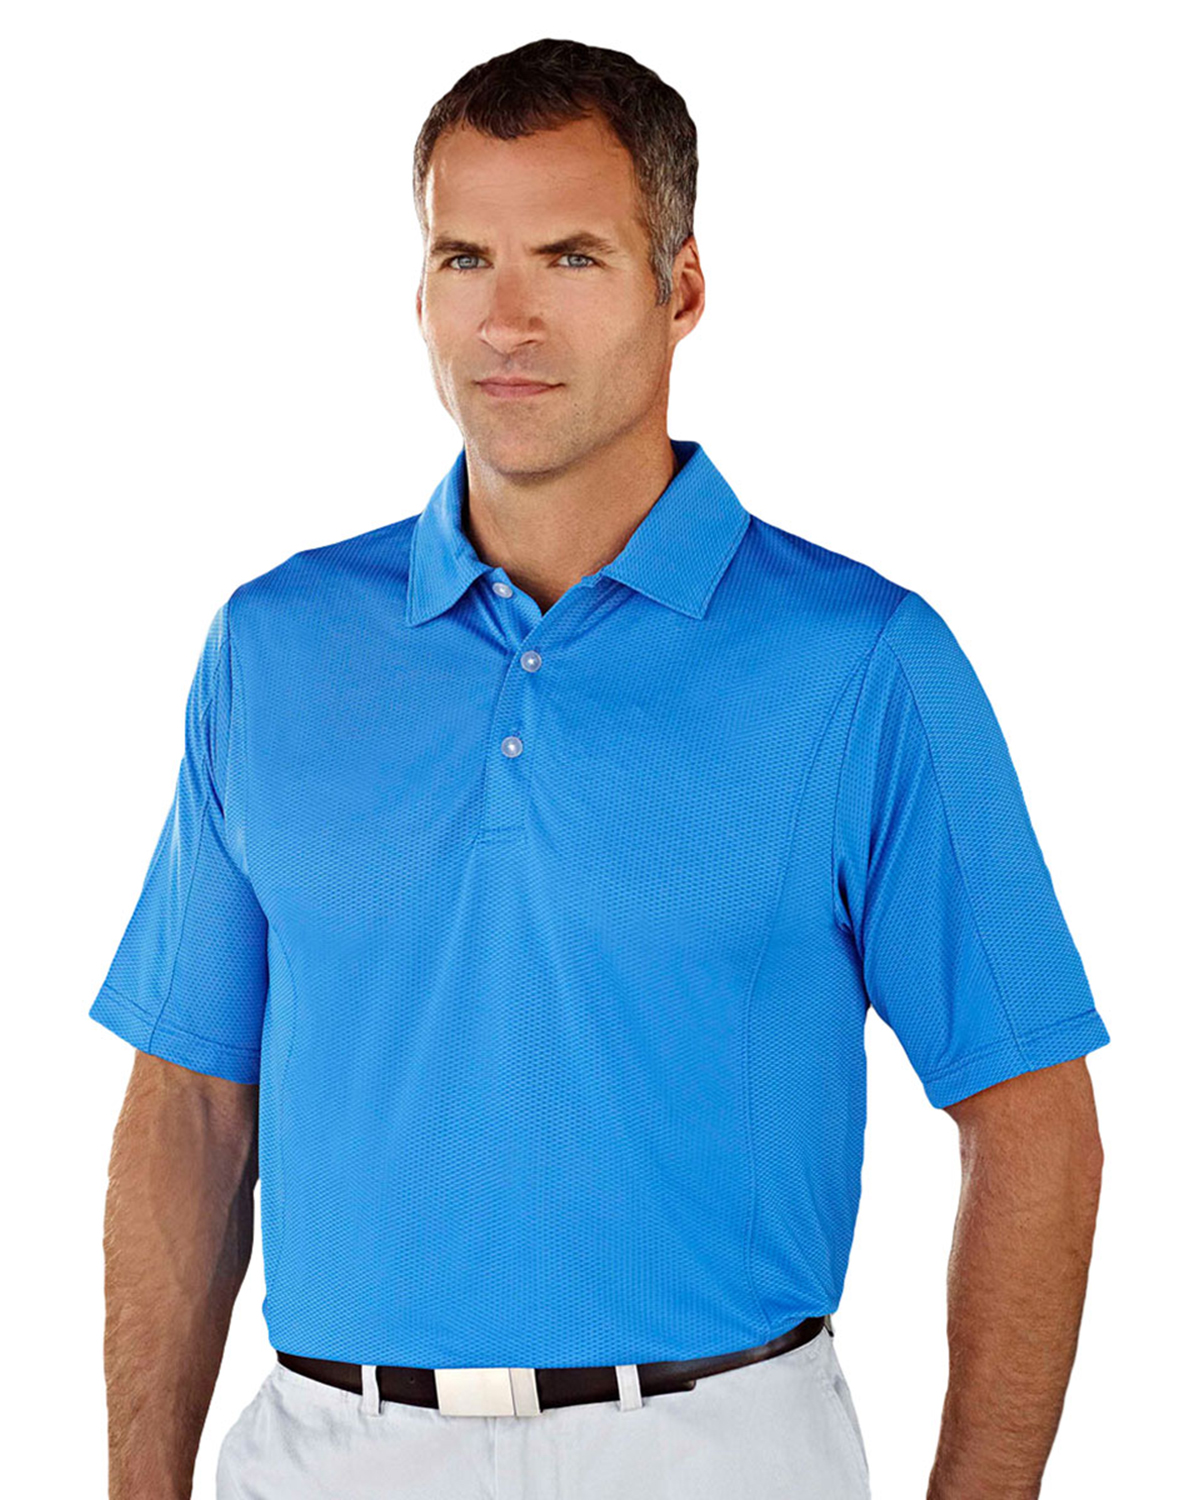 Men S 90 Polyester 10 Spandex Knit Polo Shirt